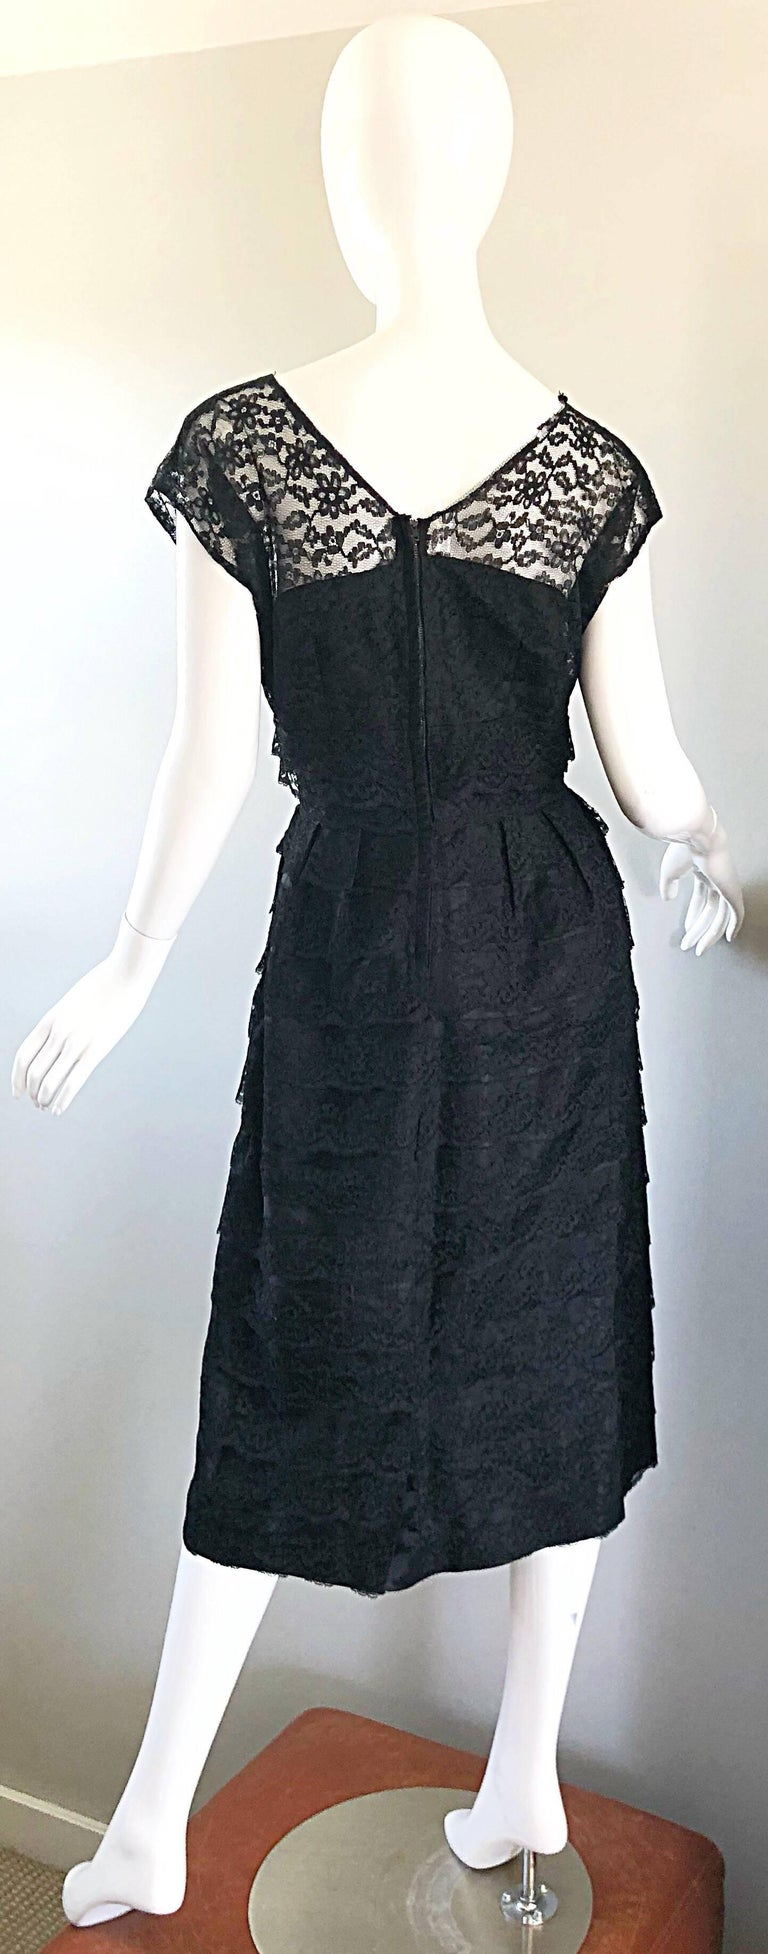 Chic 1950s Black French Lace Nude Illusion Vintage 50s Silk Dress For Sale 8